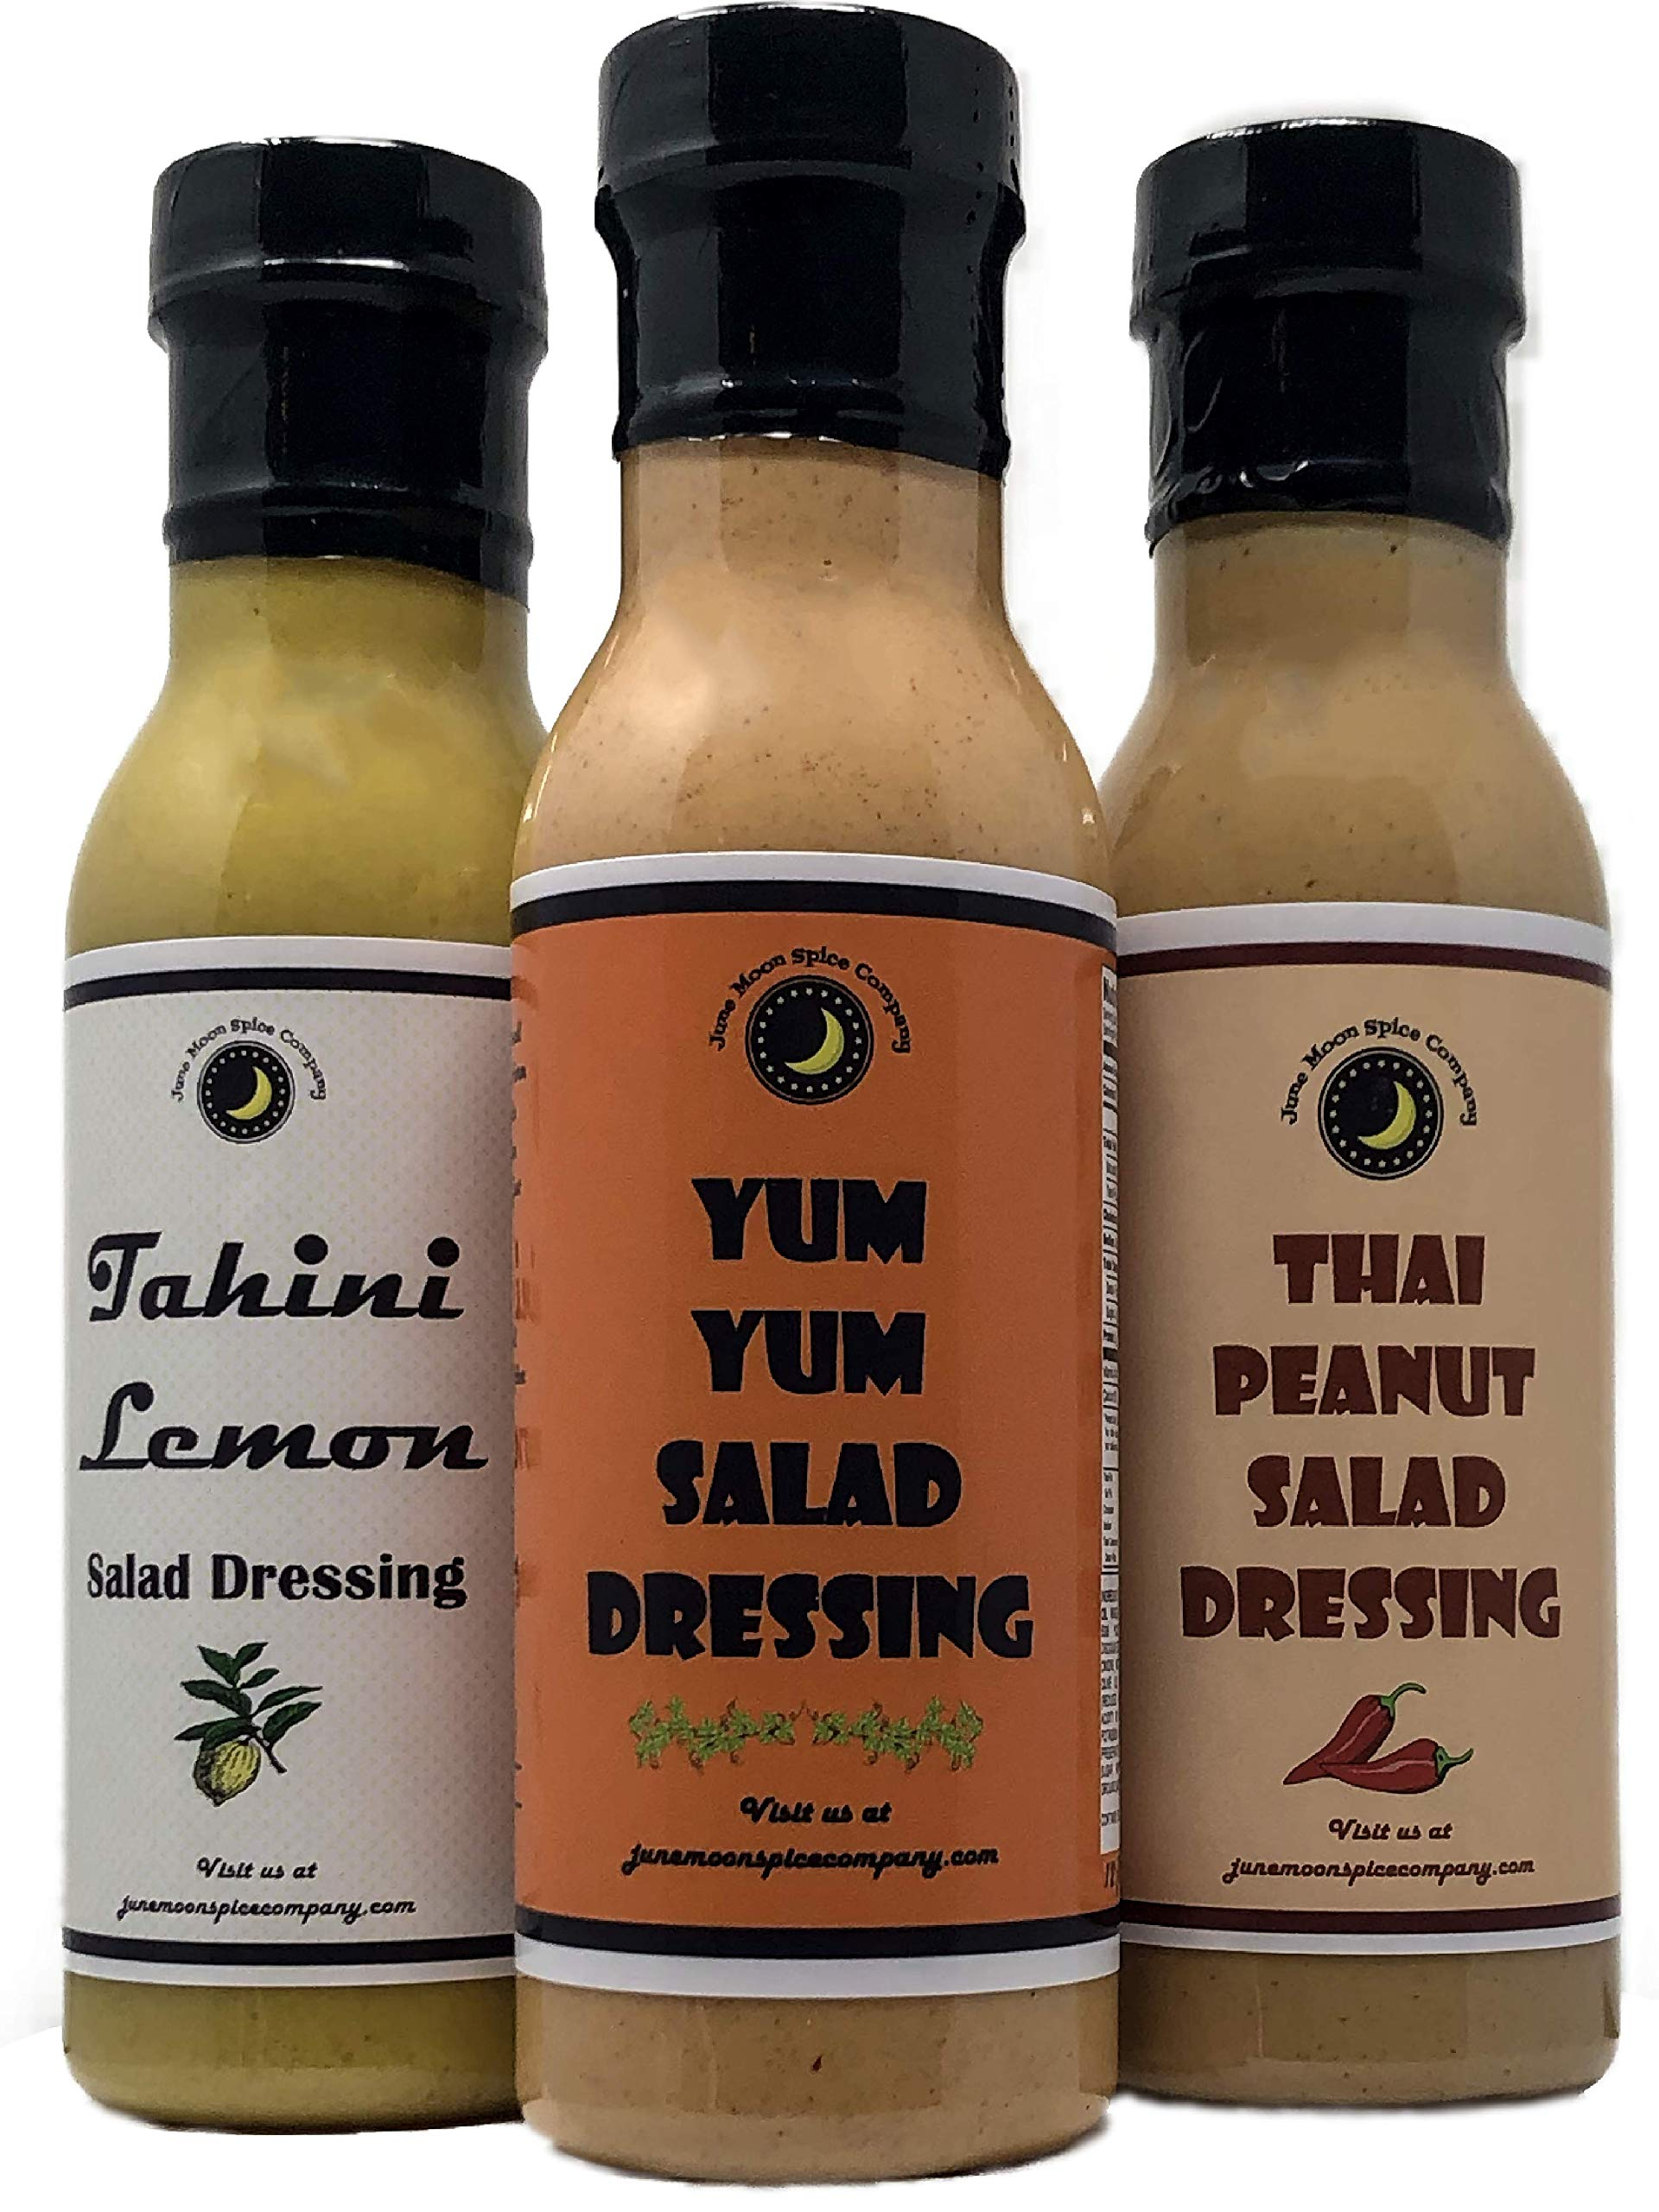 Premium | SALAD DRESSING | Variety 3 Pack | Tahini Lemon | Yum Yum | Thai Peanut | Low Cholesterol | Crafted in Small Batches with Farm Fresh Herbs for Premium Flavor and Zest